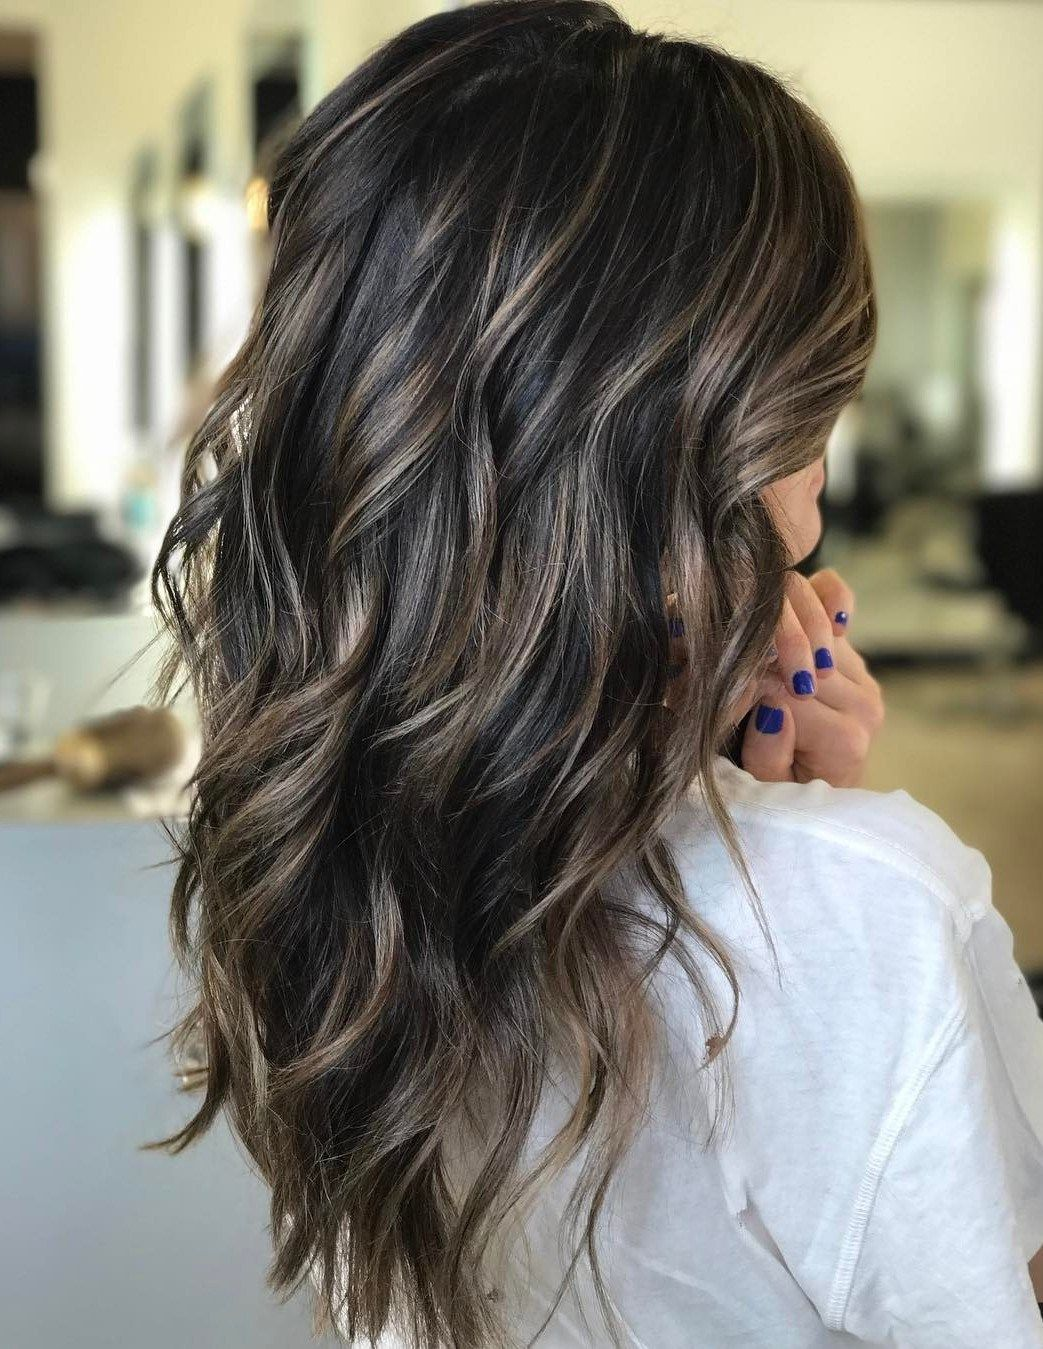 90 balayage hair color ideas with blonde brown and caramel highlights cheveux et coiffures. Black Bedroom Furniture Sets. Home Design Ideas